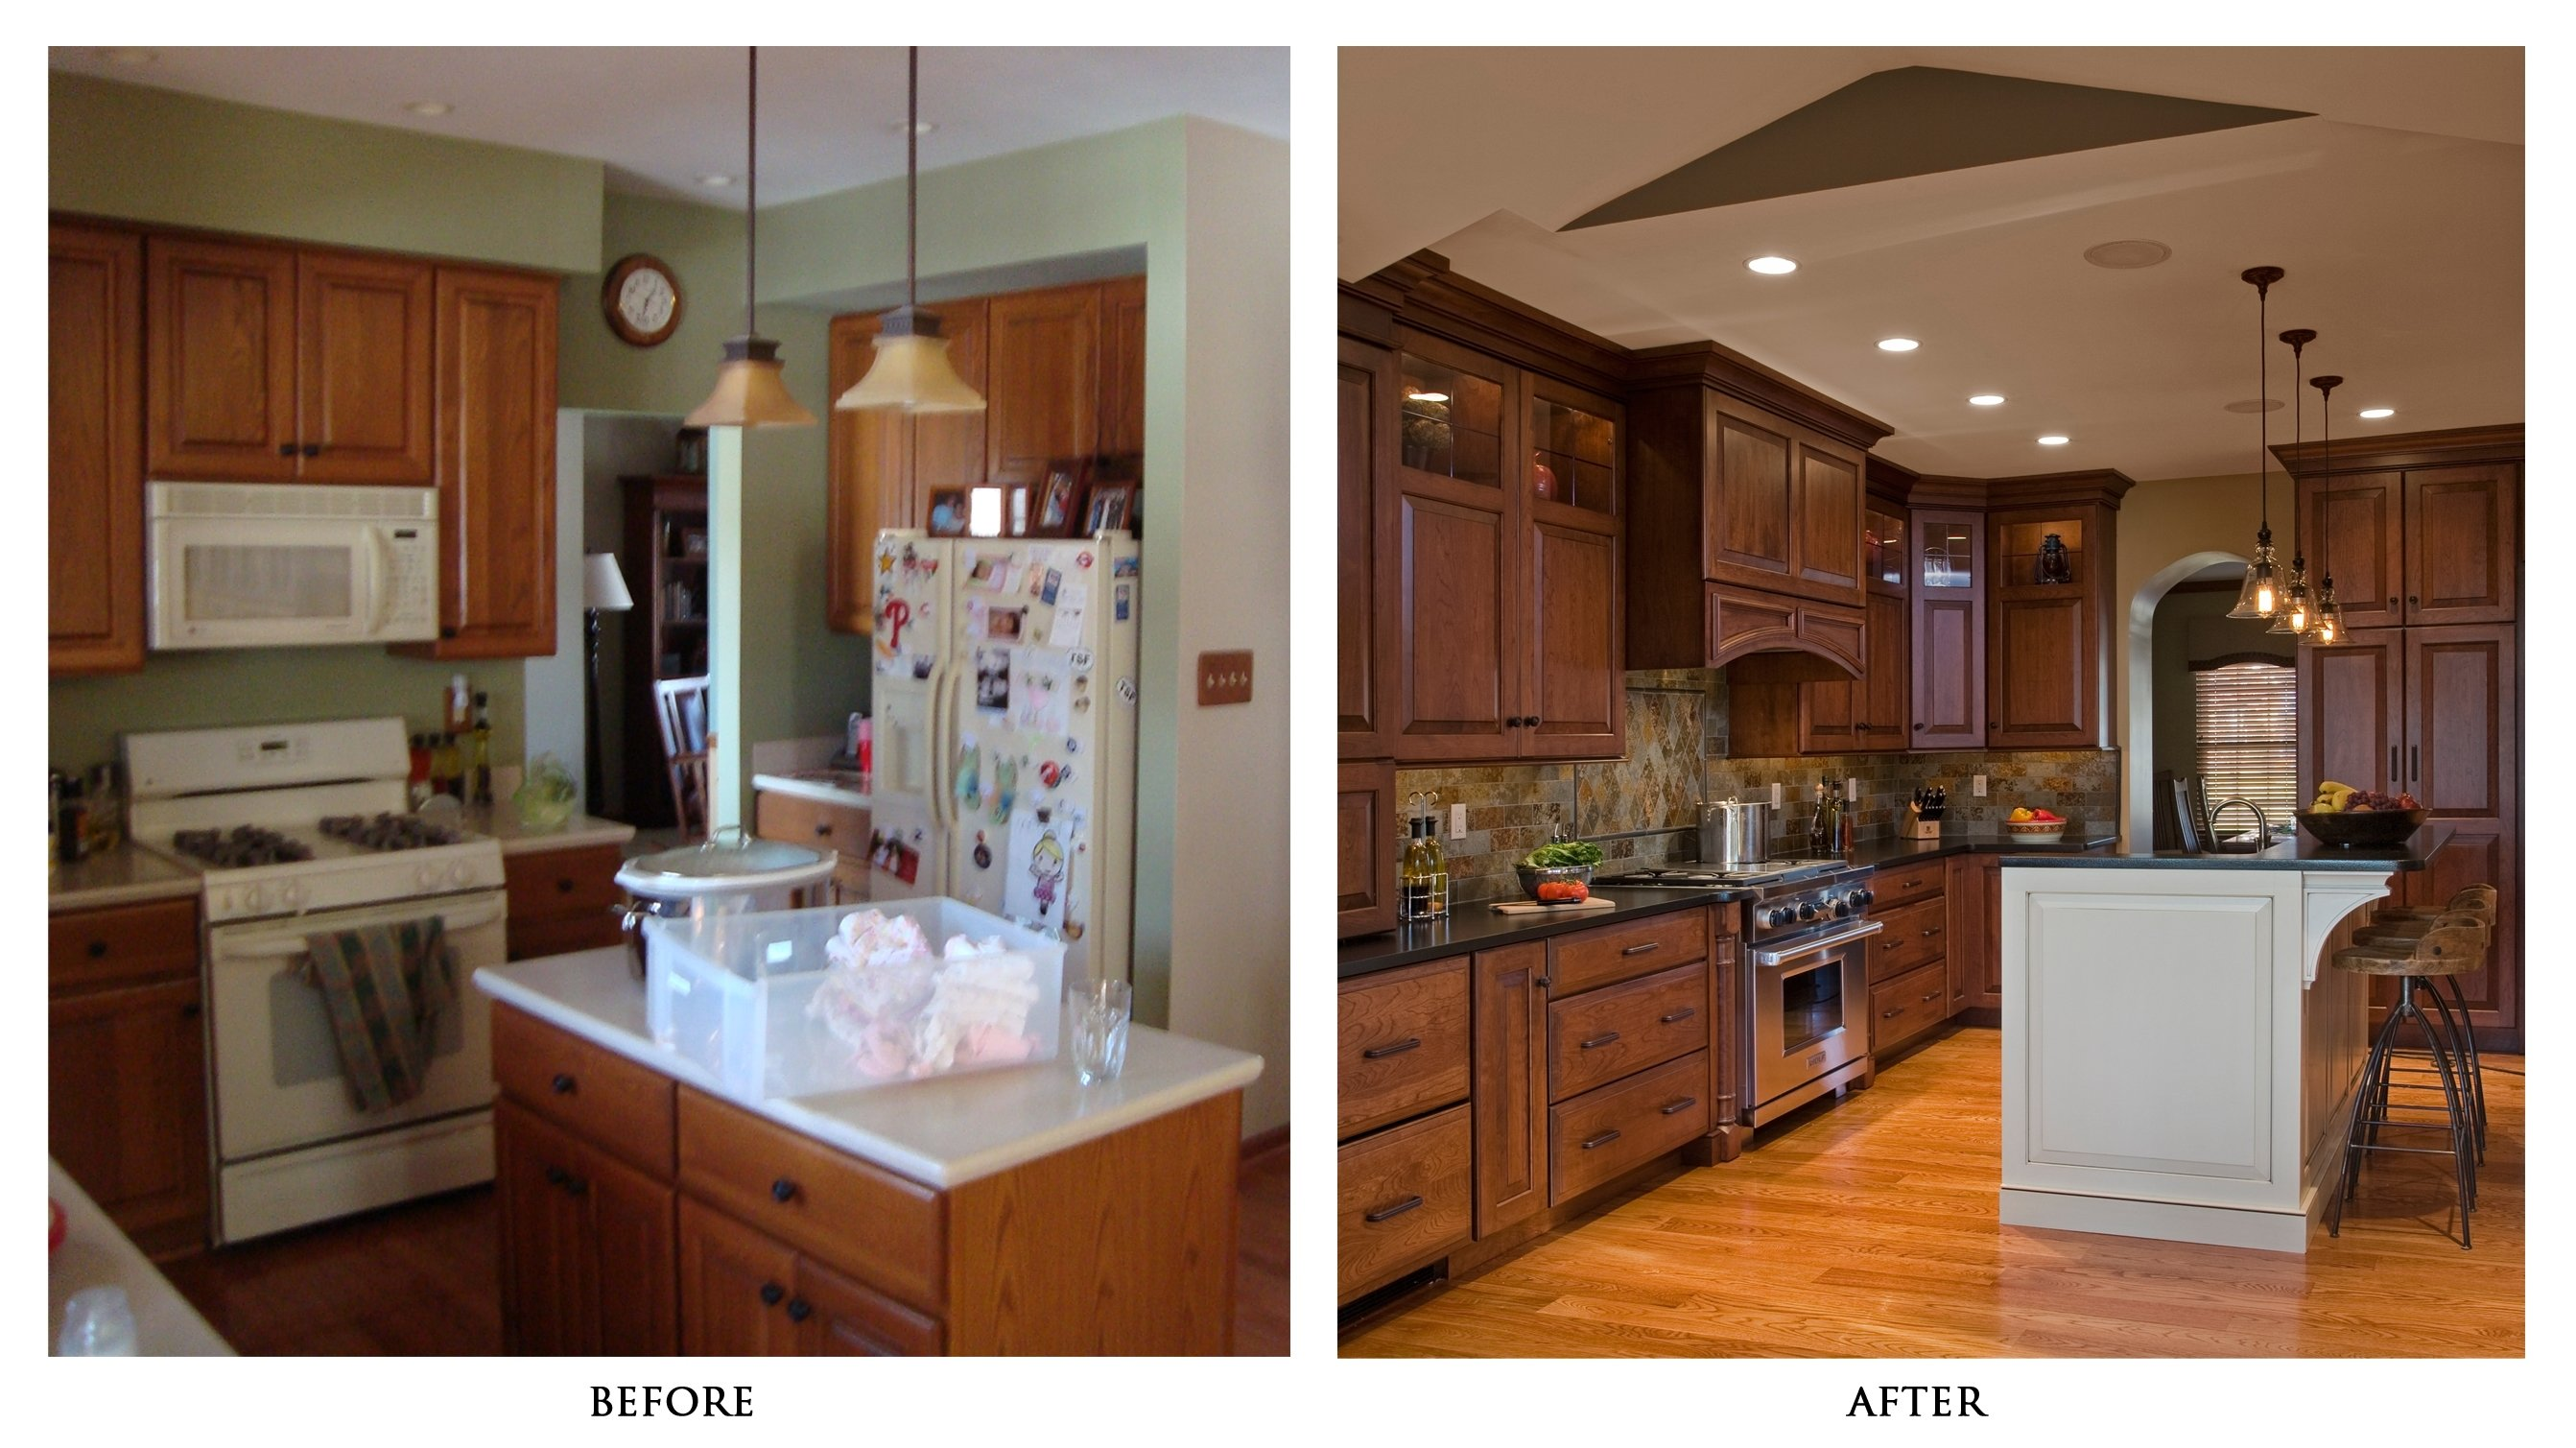 10 Wonderful Kitchen Remodeling Ideas Before And After stunning best of before and after kitchen remo 26698 2021